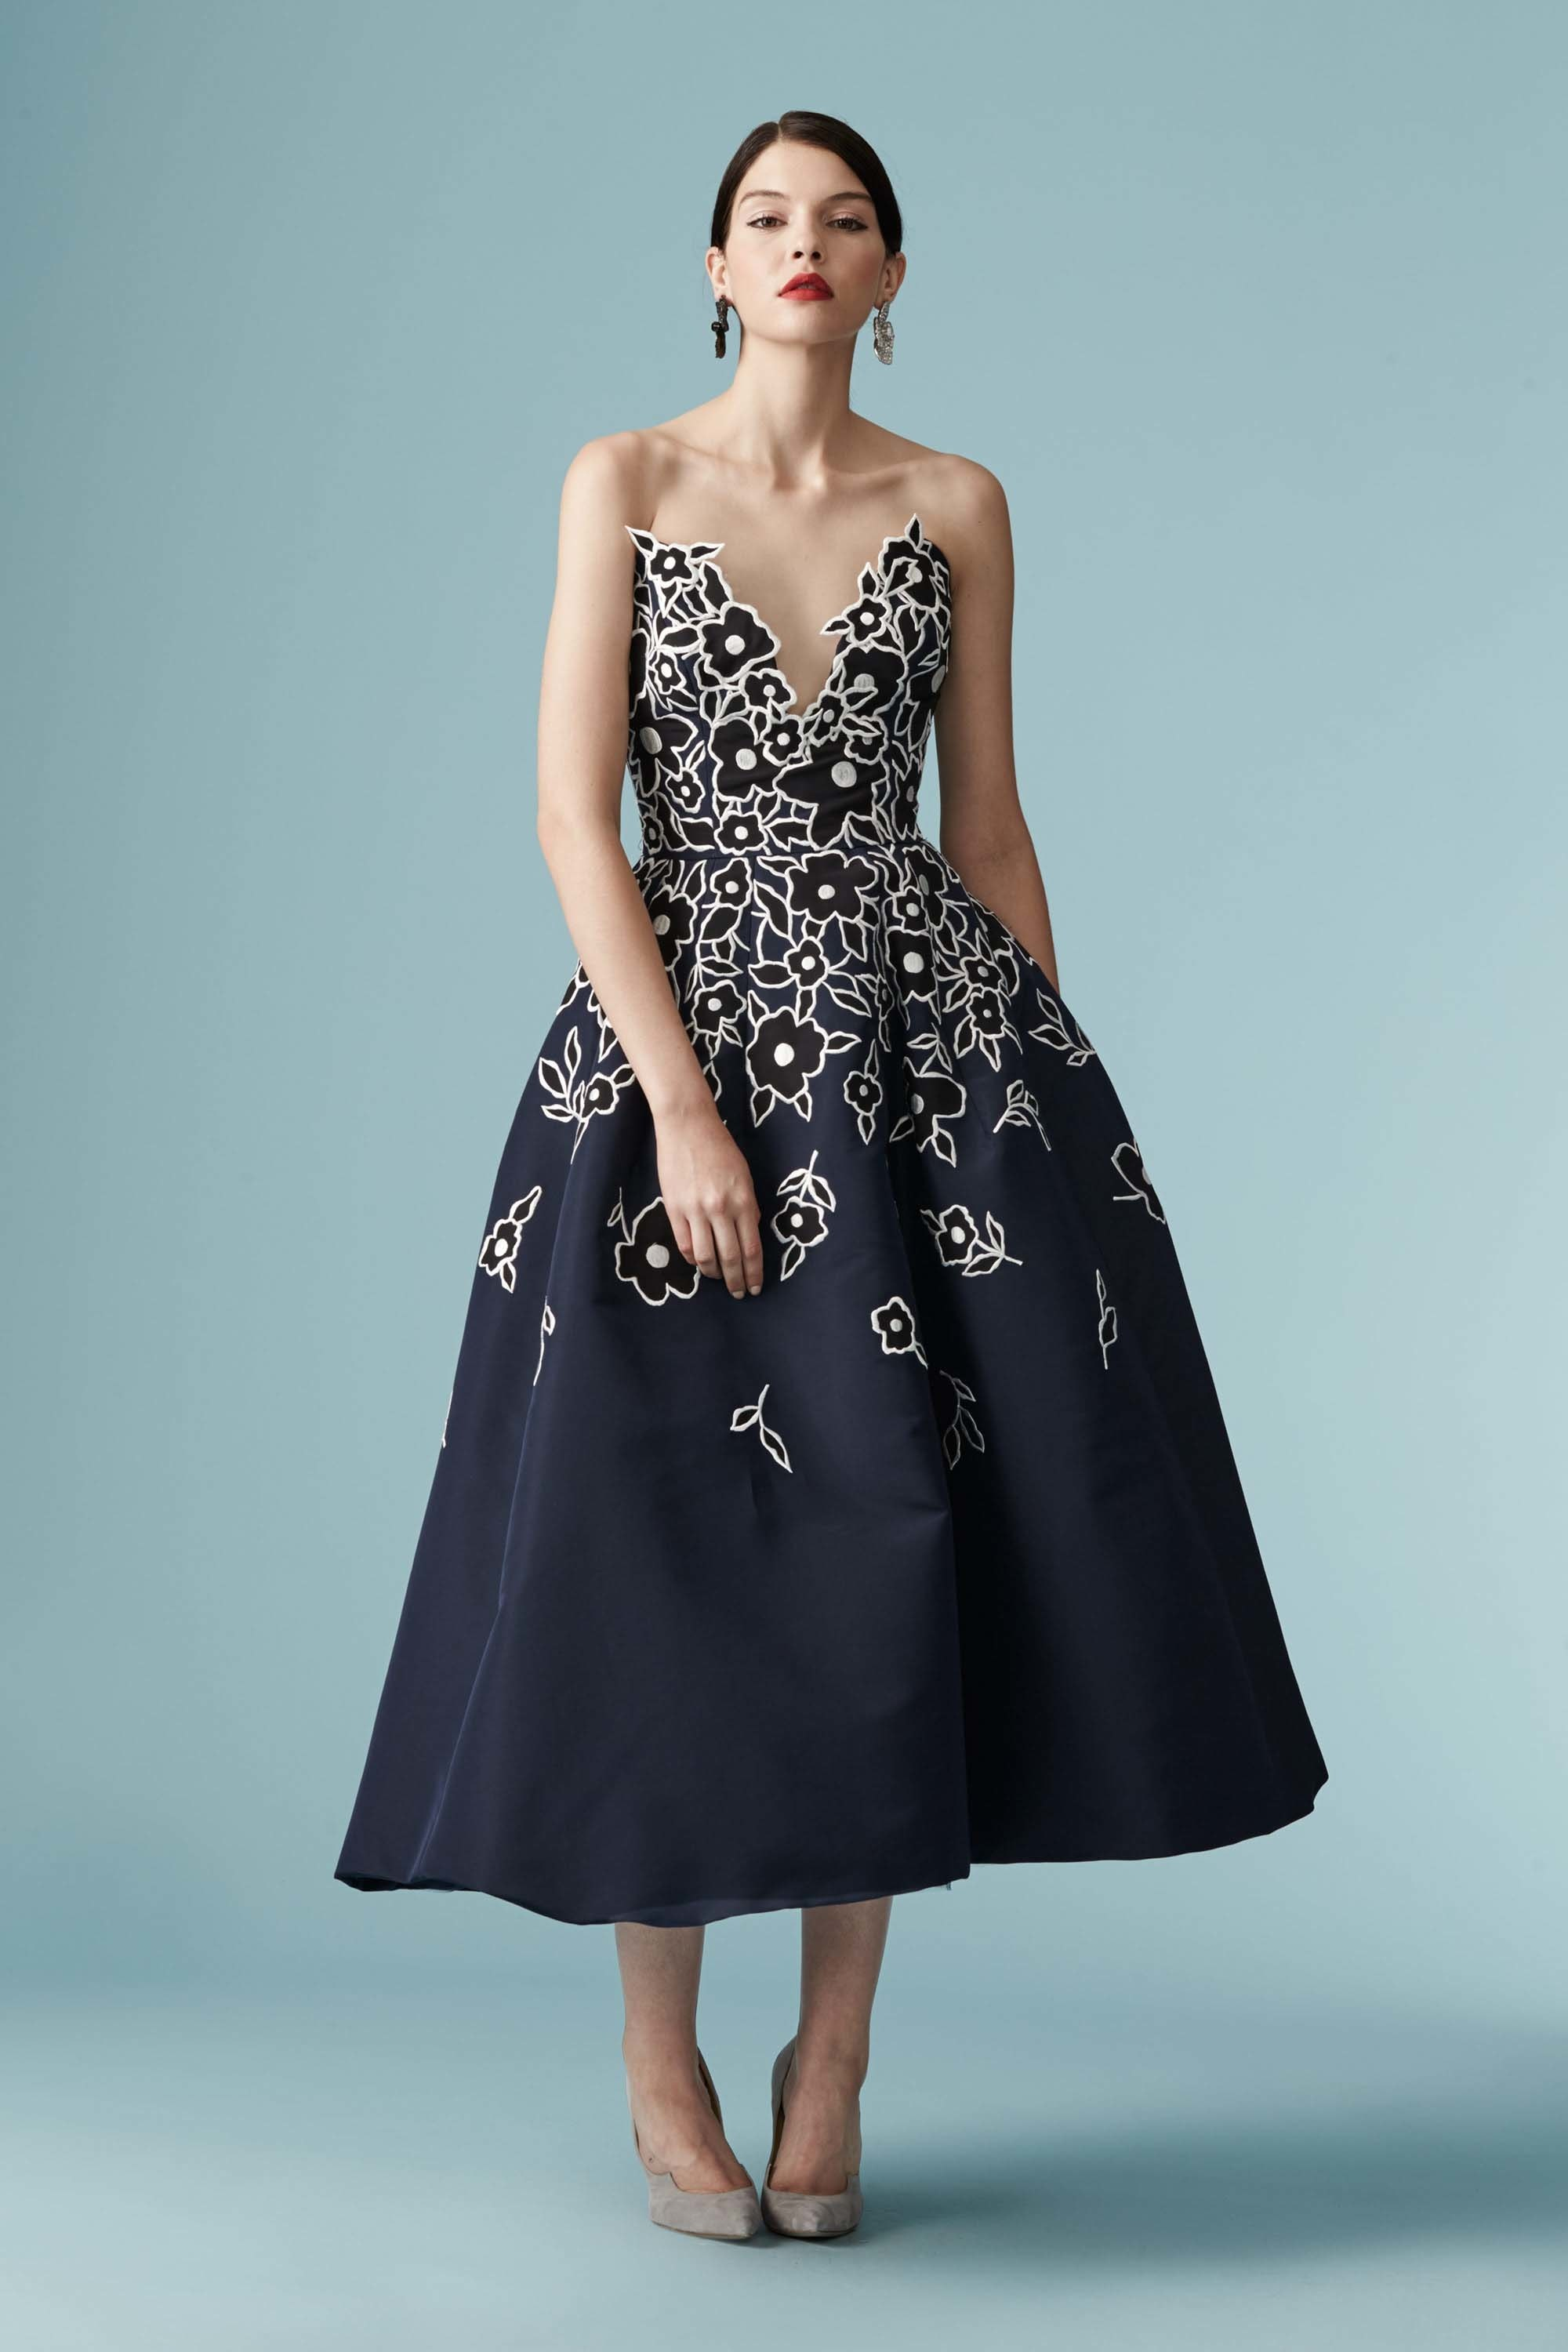 Model wearing Carolina Herrera midnight blue butterfly bustier fit-and-flare dress with floral appliques